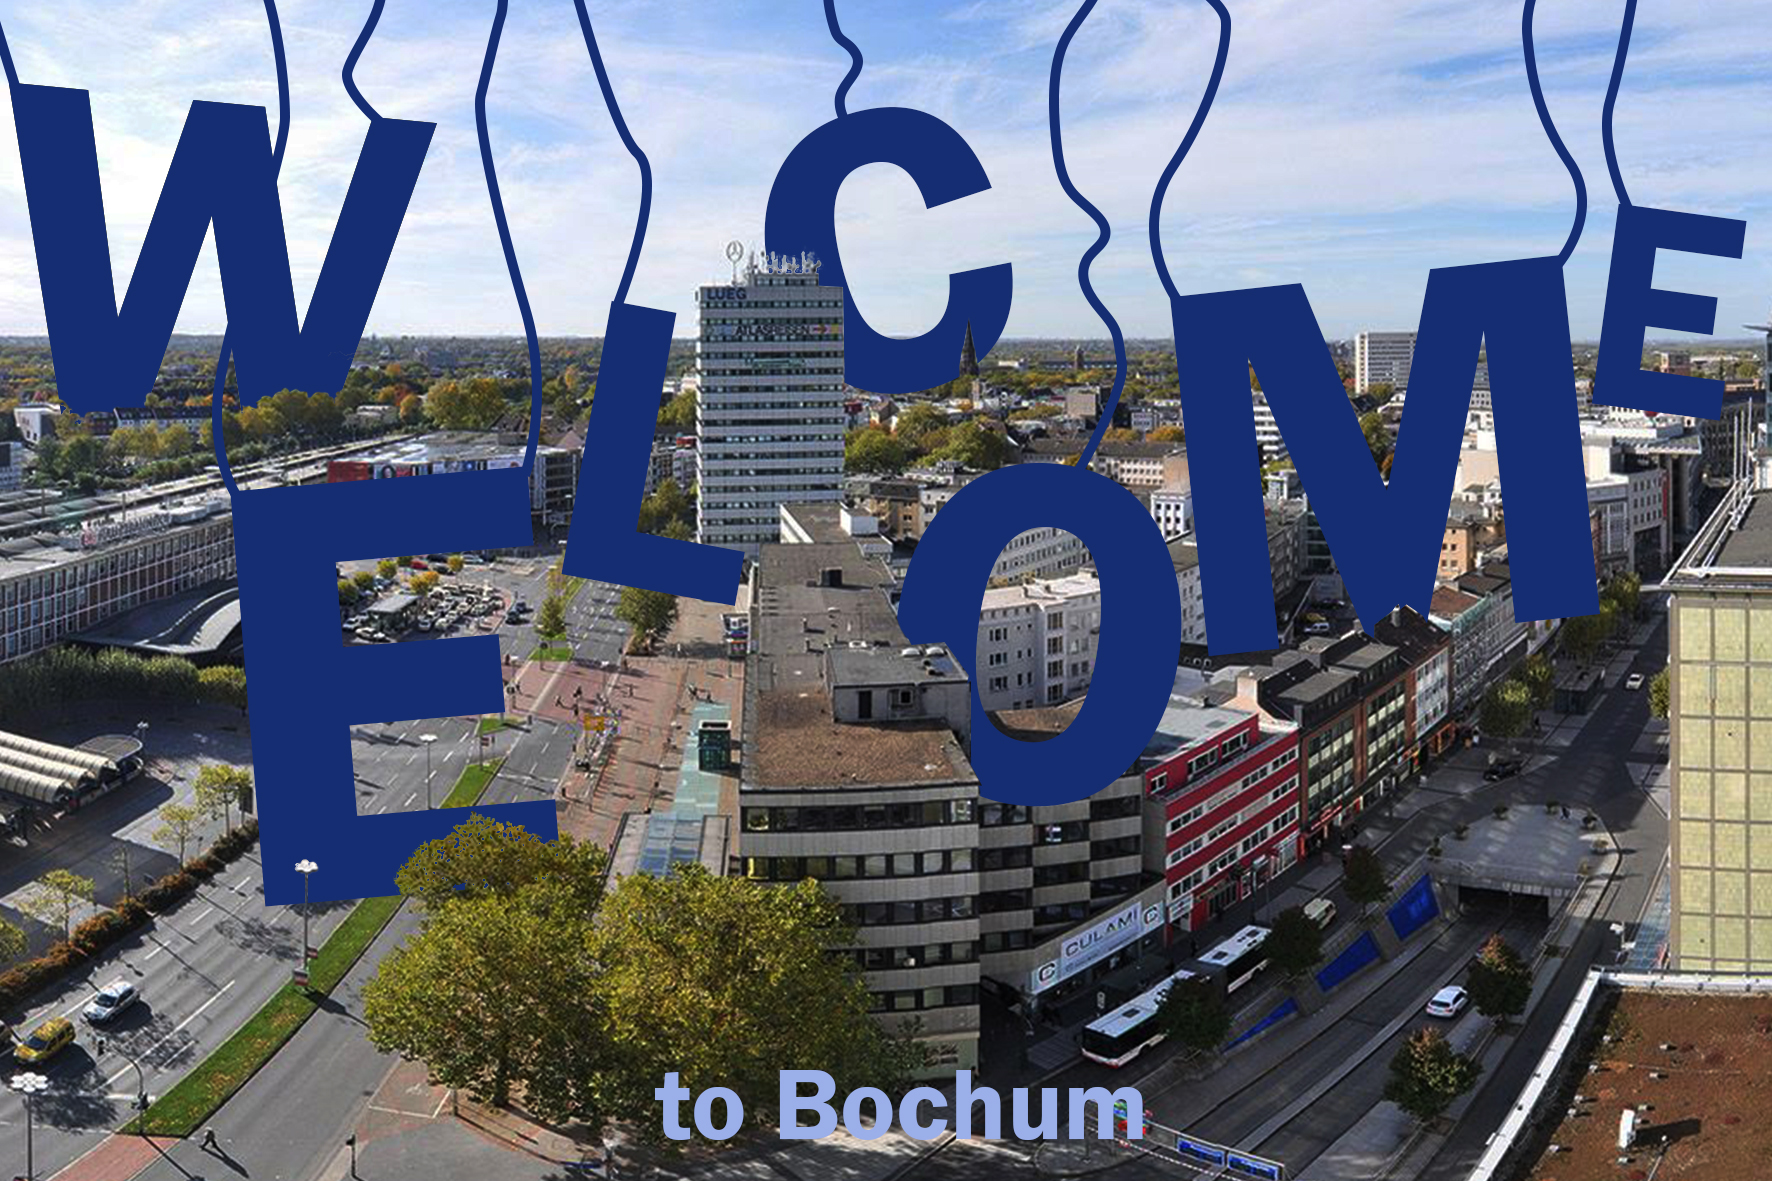 Welcome to Bochum